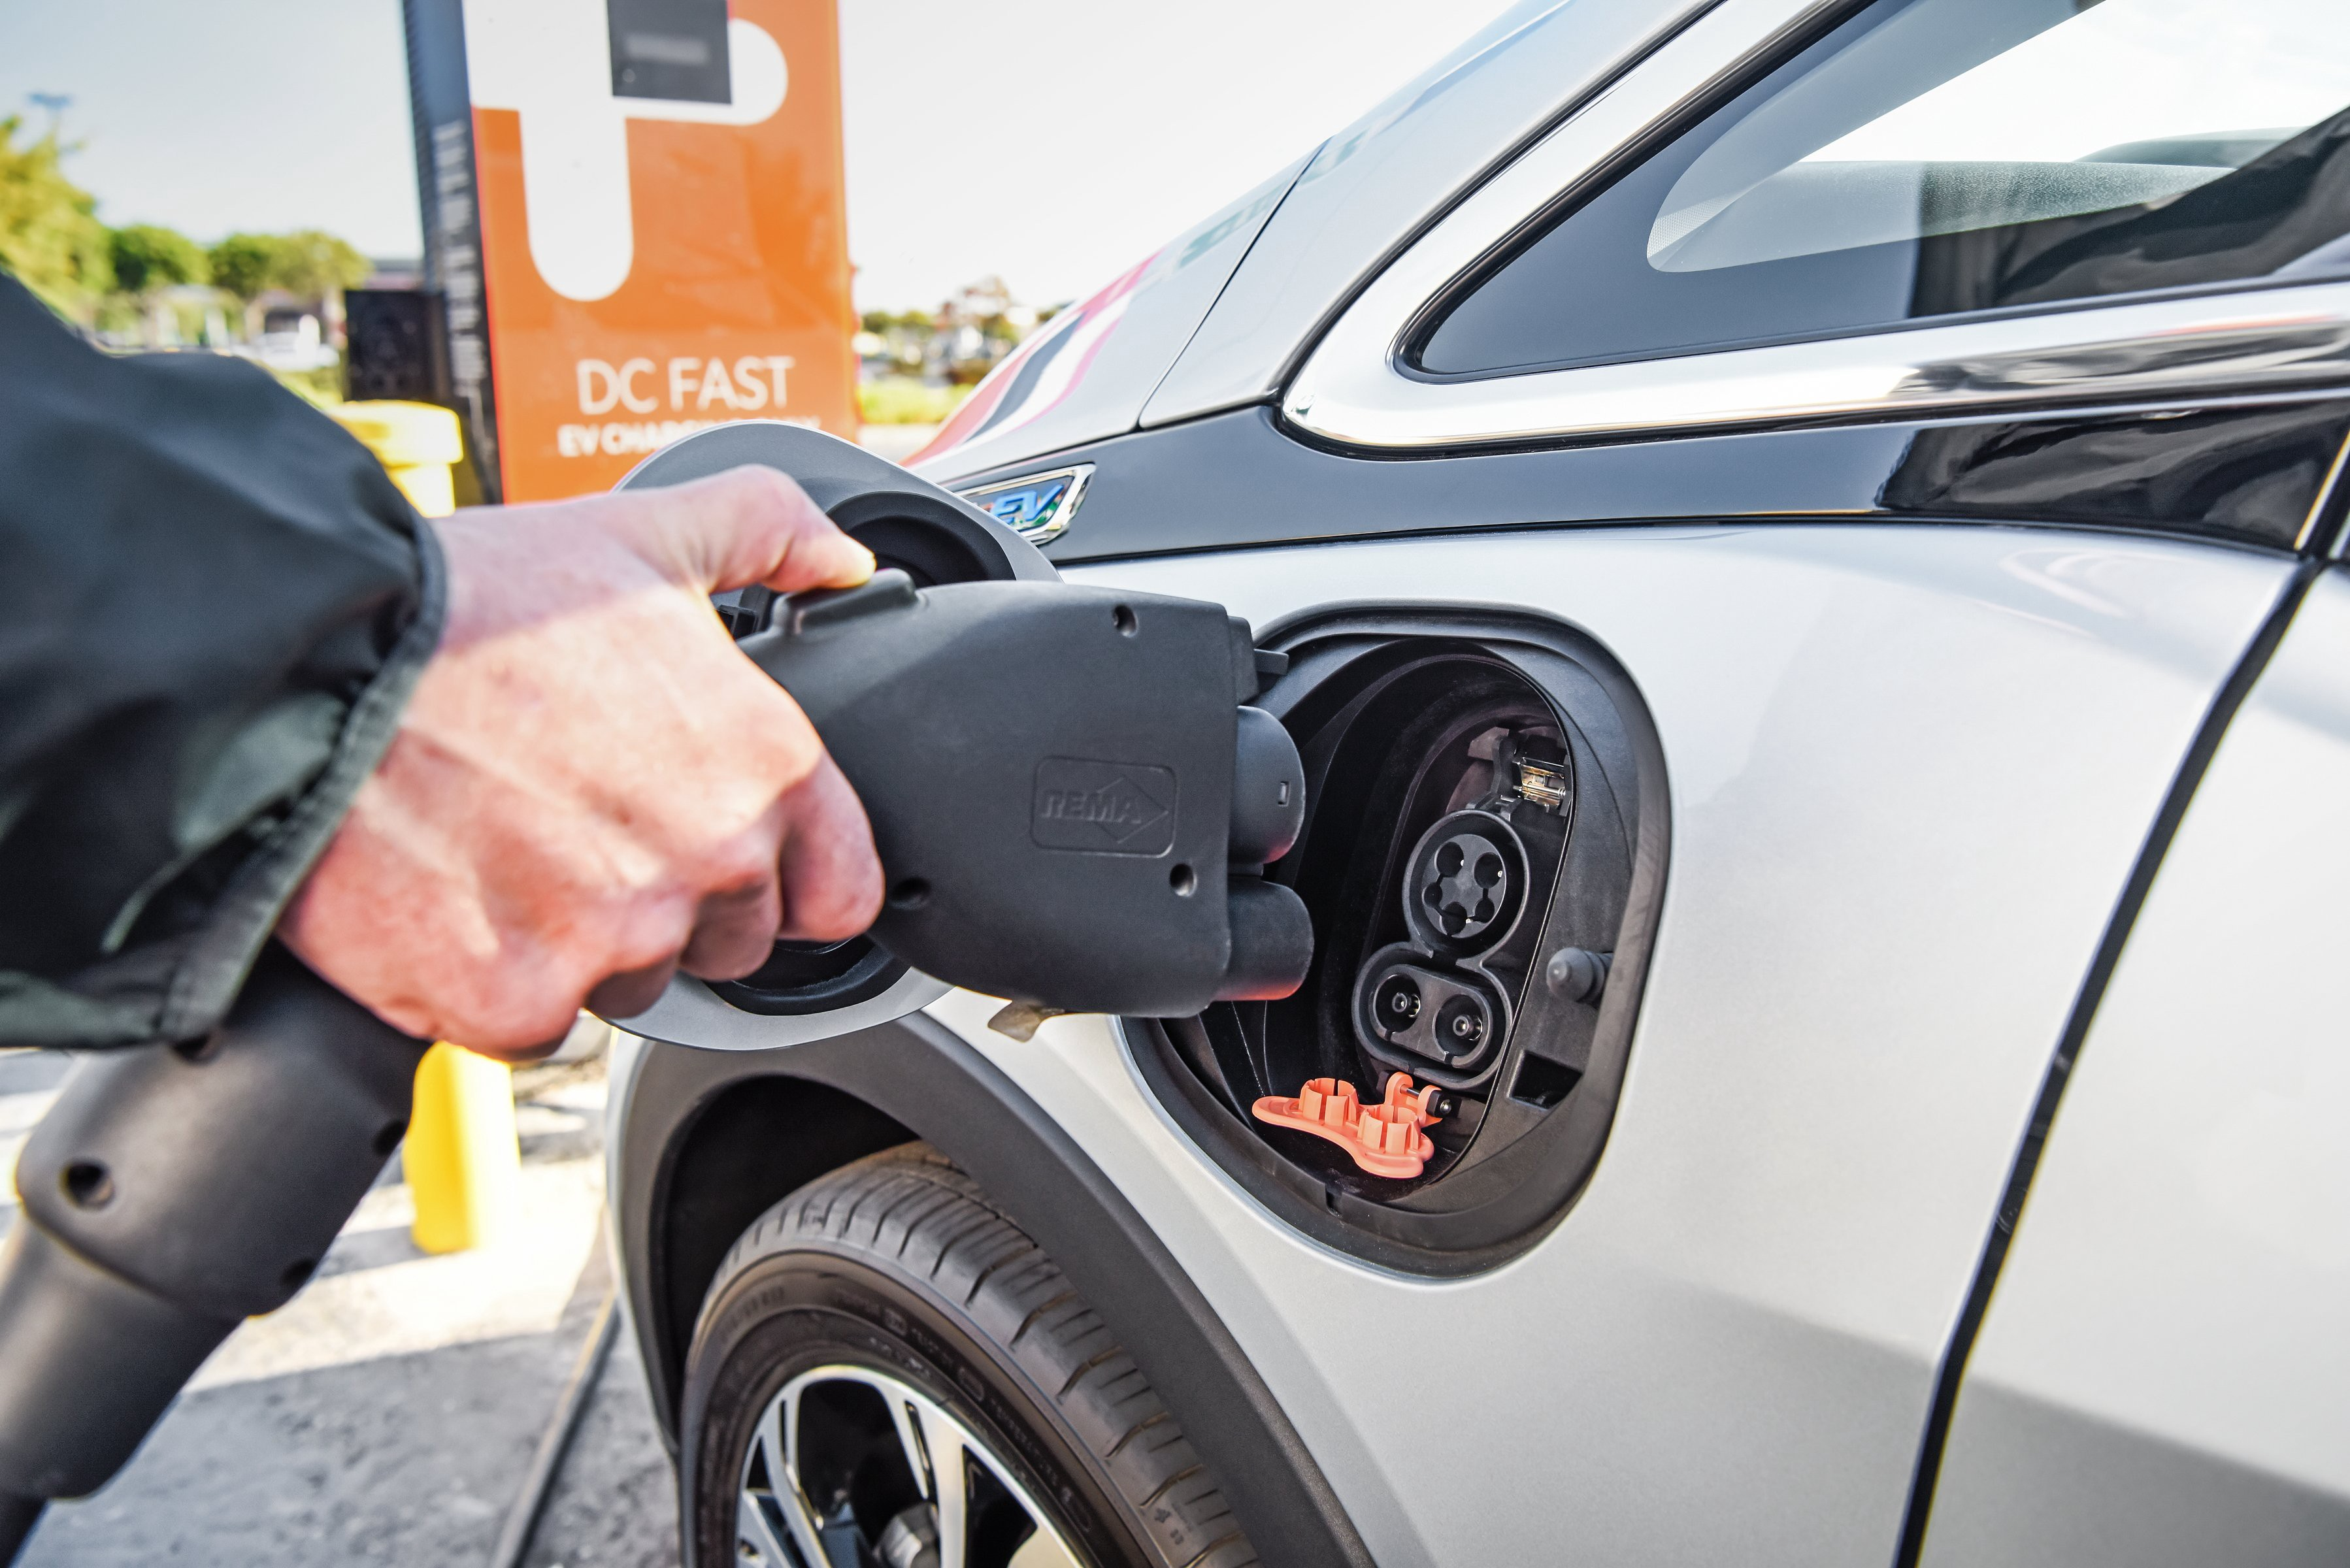 A hand plugging an electric car in to charge.